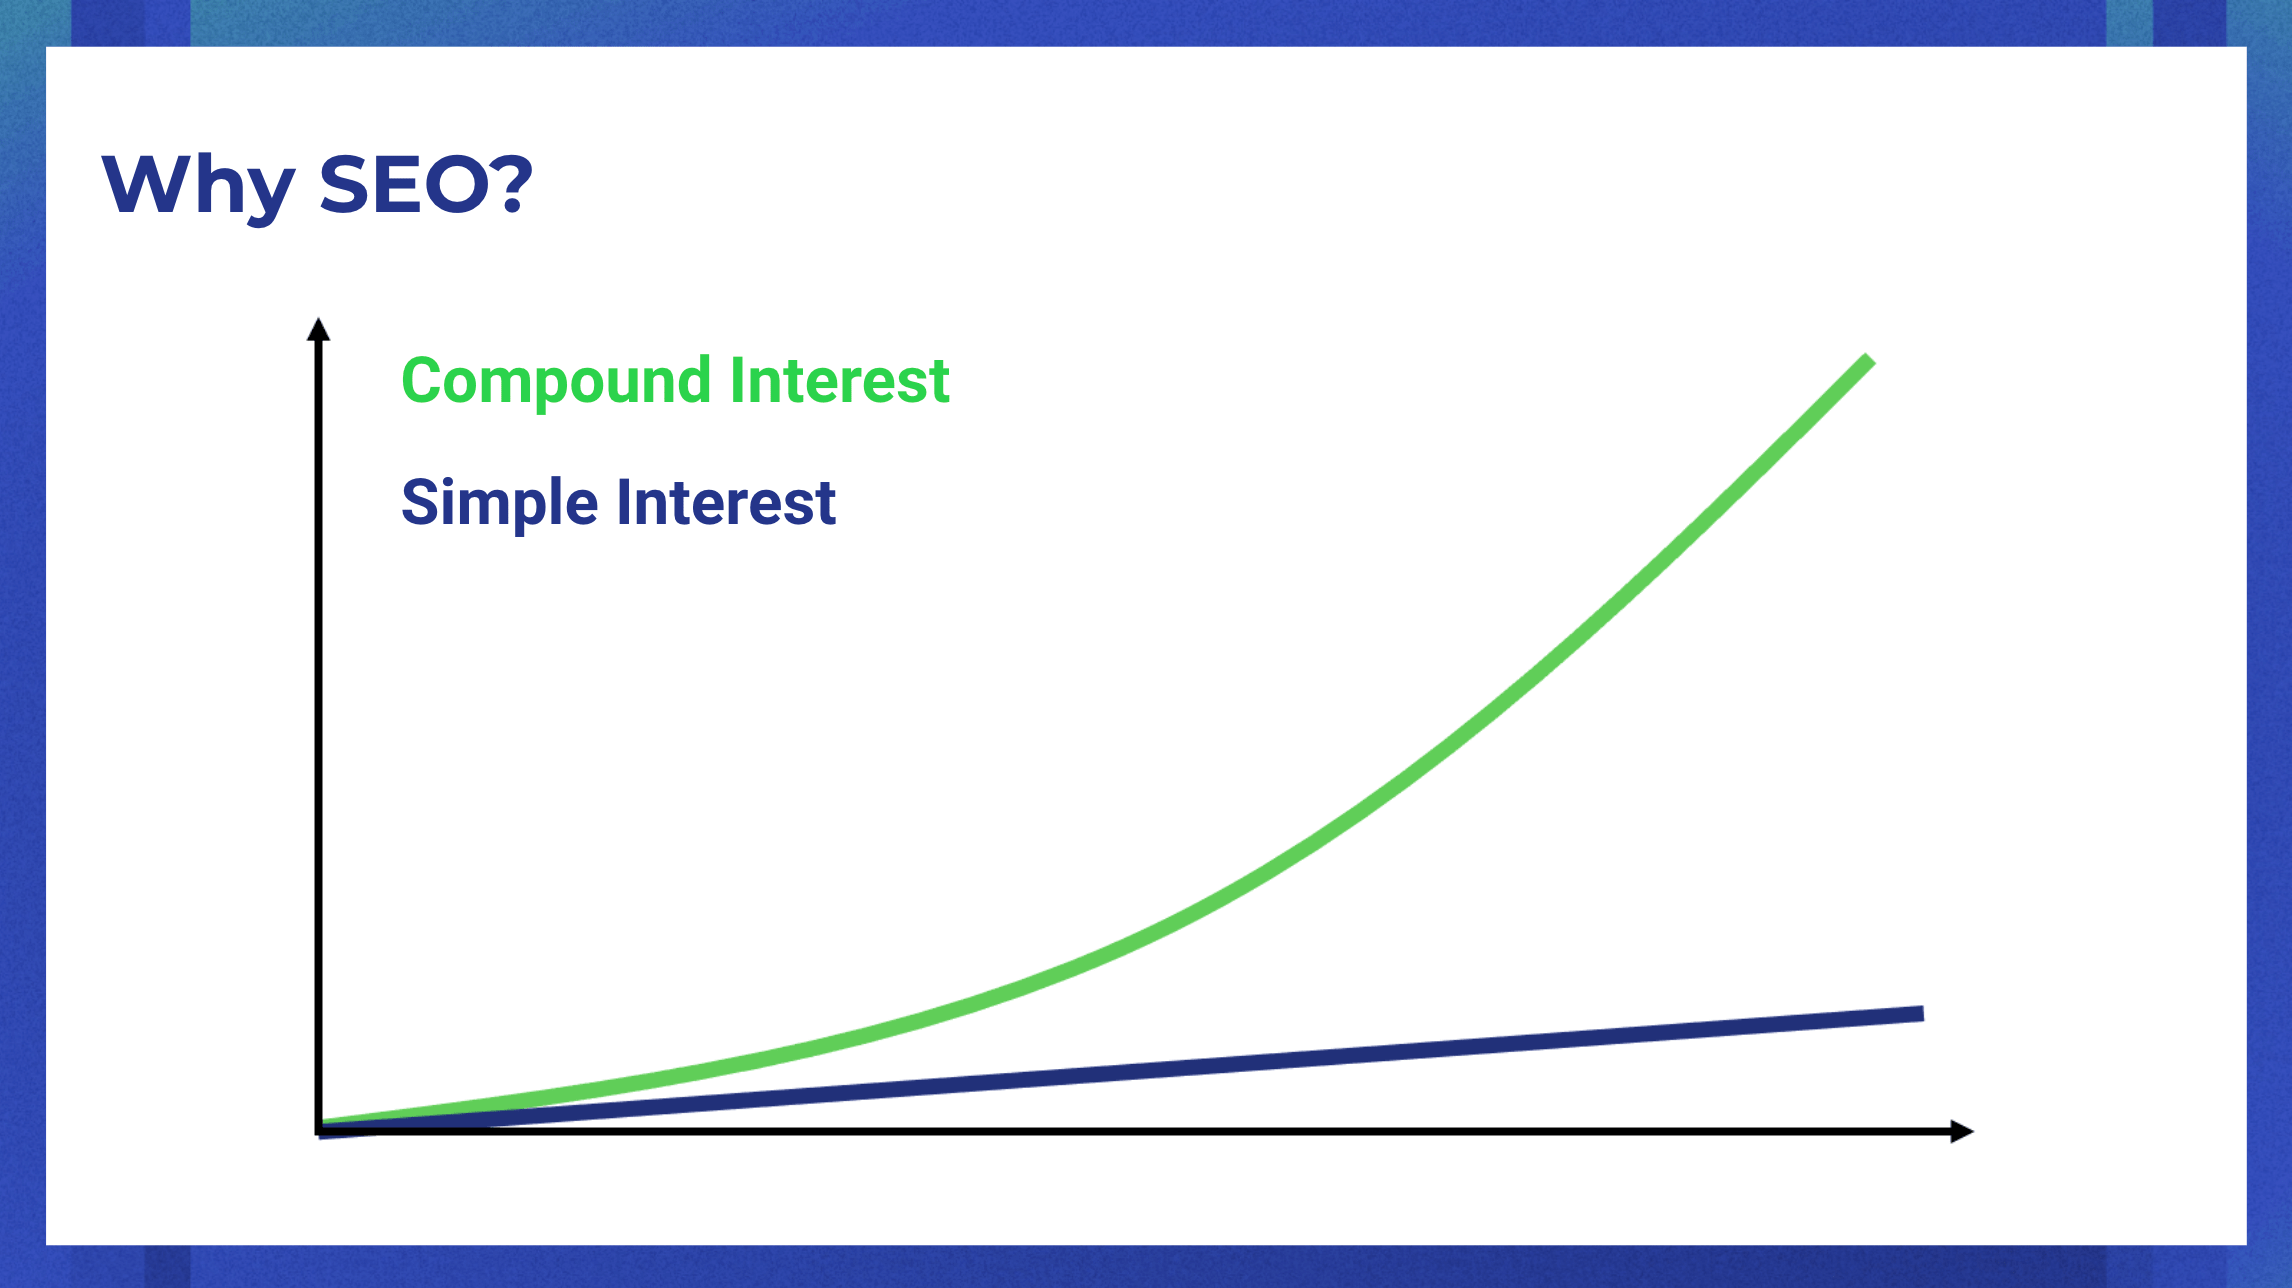 Why SEO? Graph comparing compound vs simple interest growth